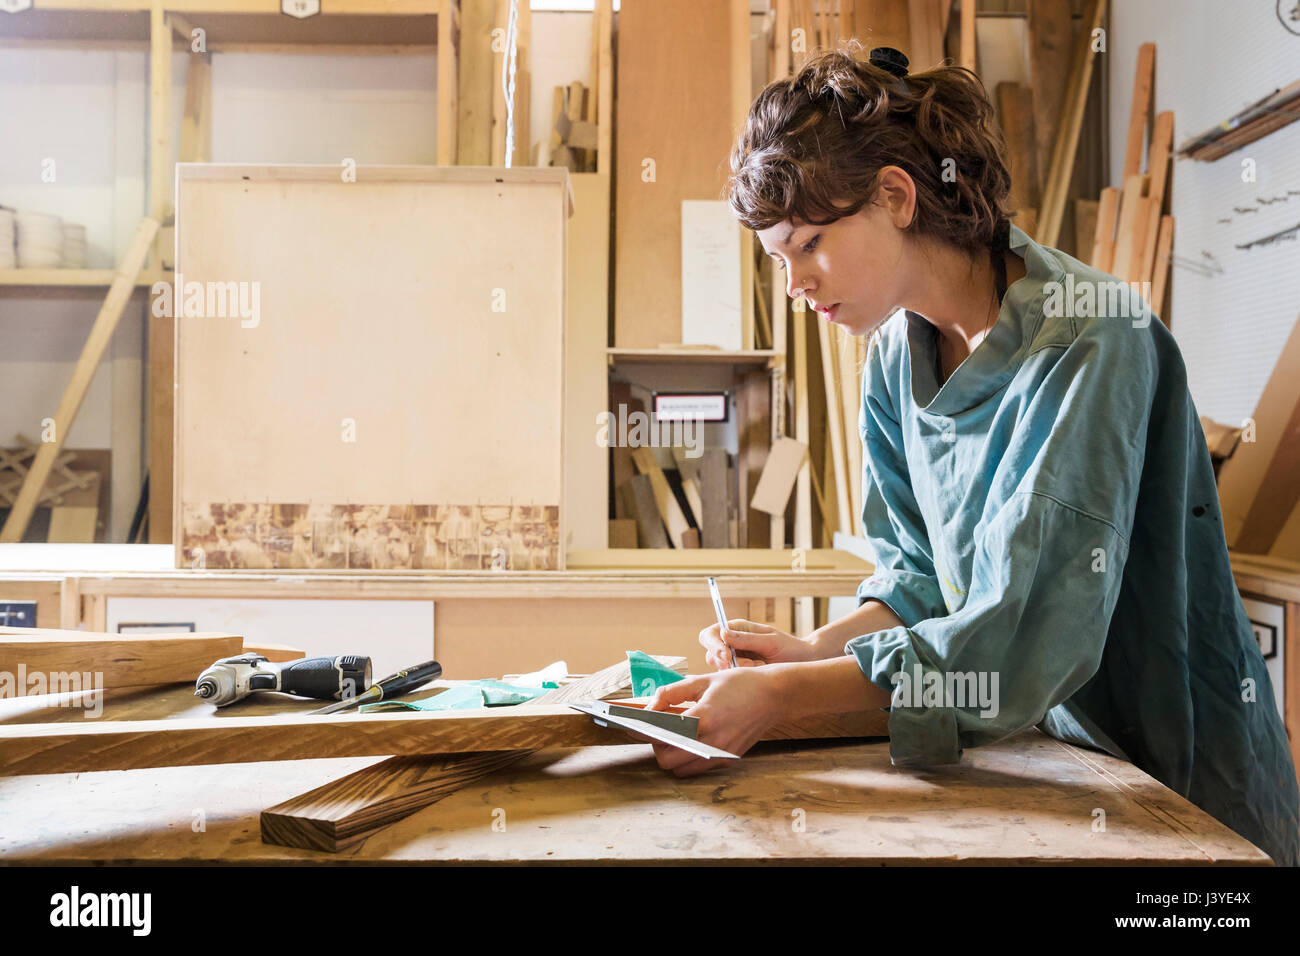 Young woman measuring wood in a workshop - Stock Image